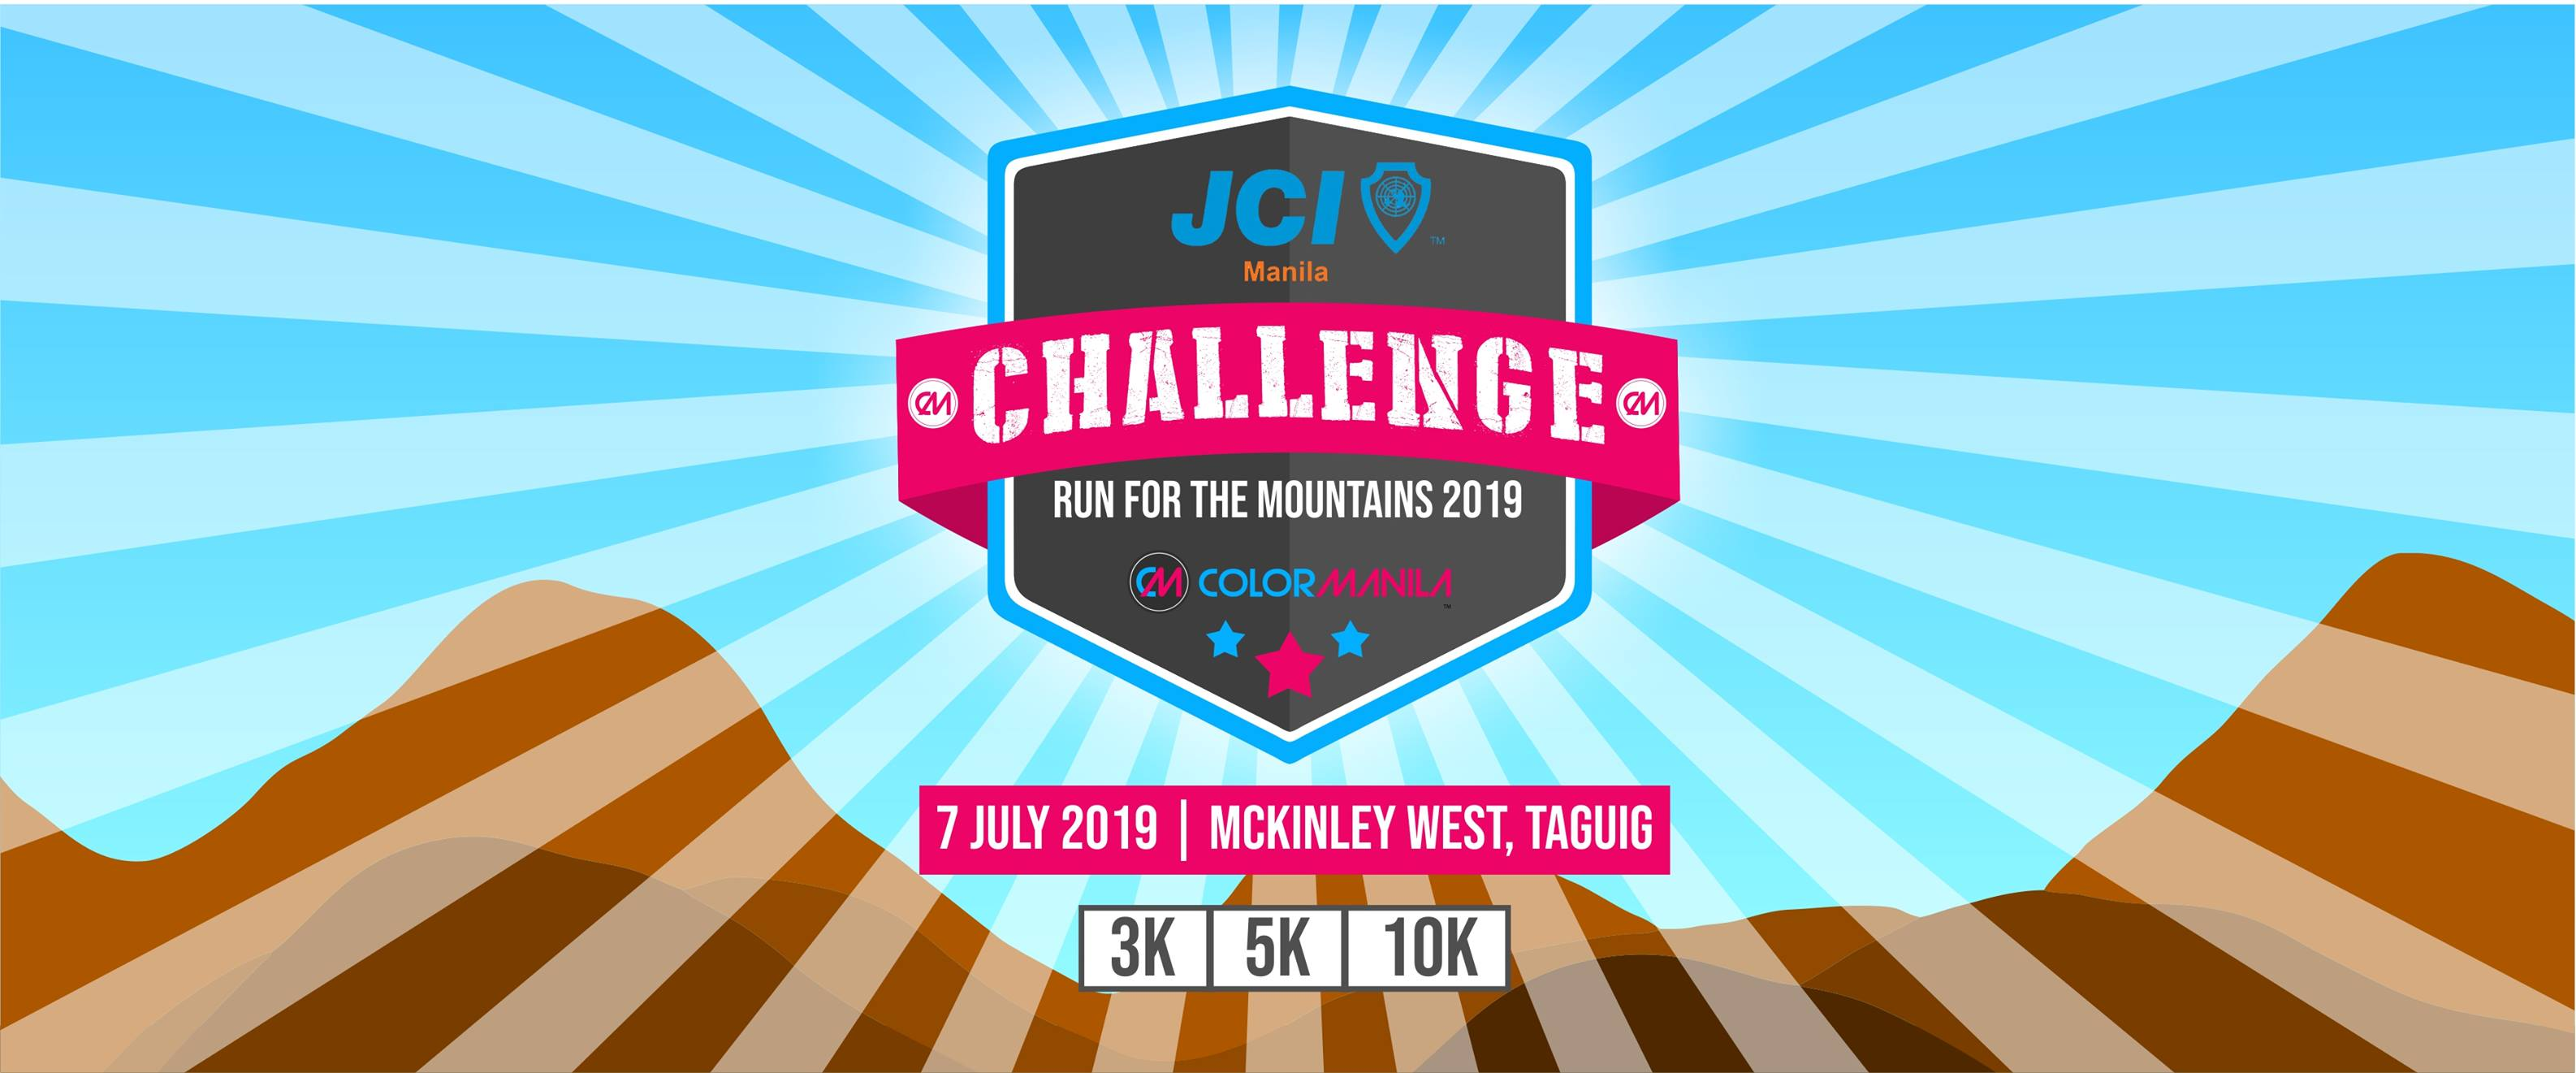 JCI MANILA CHALLENGE 2019: RUN FOR THE MOUNTAINS